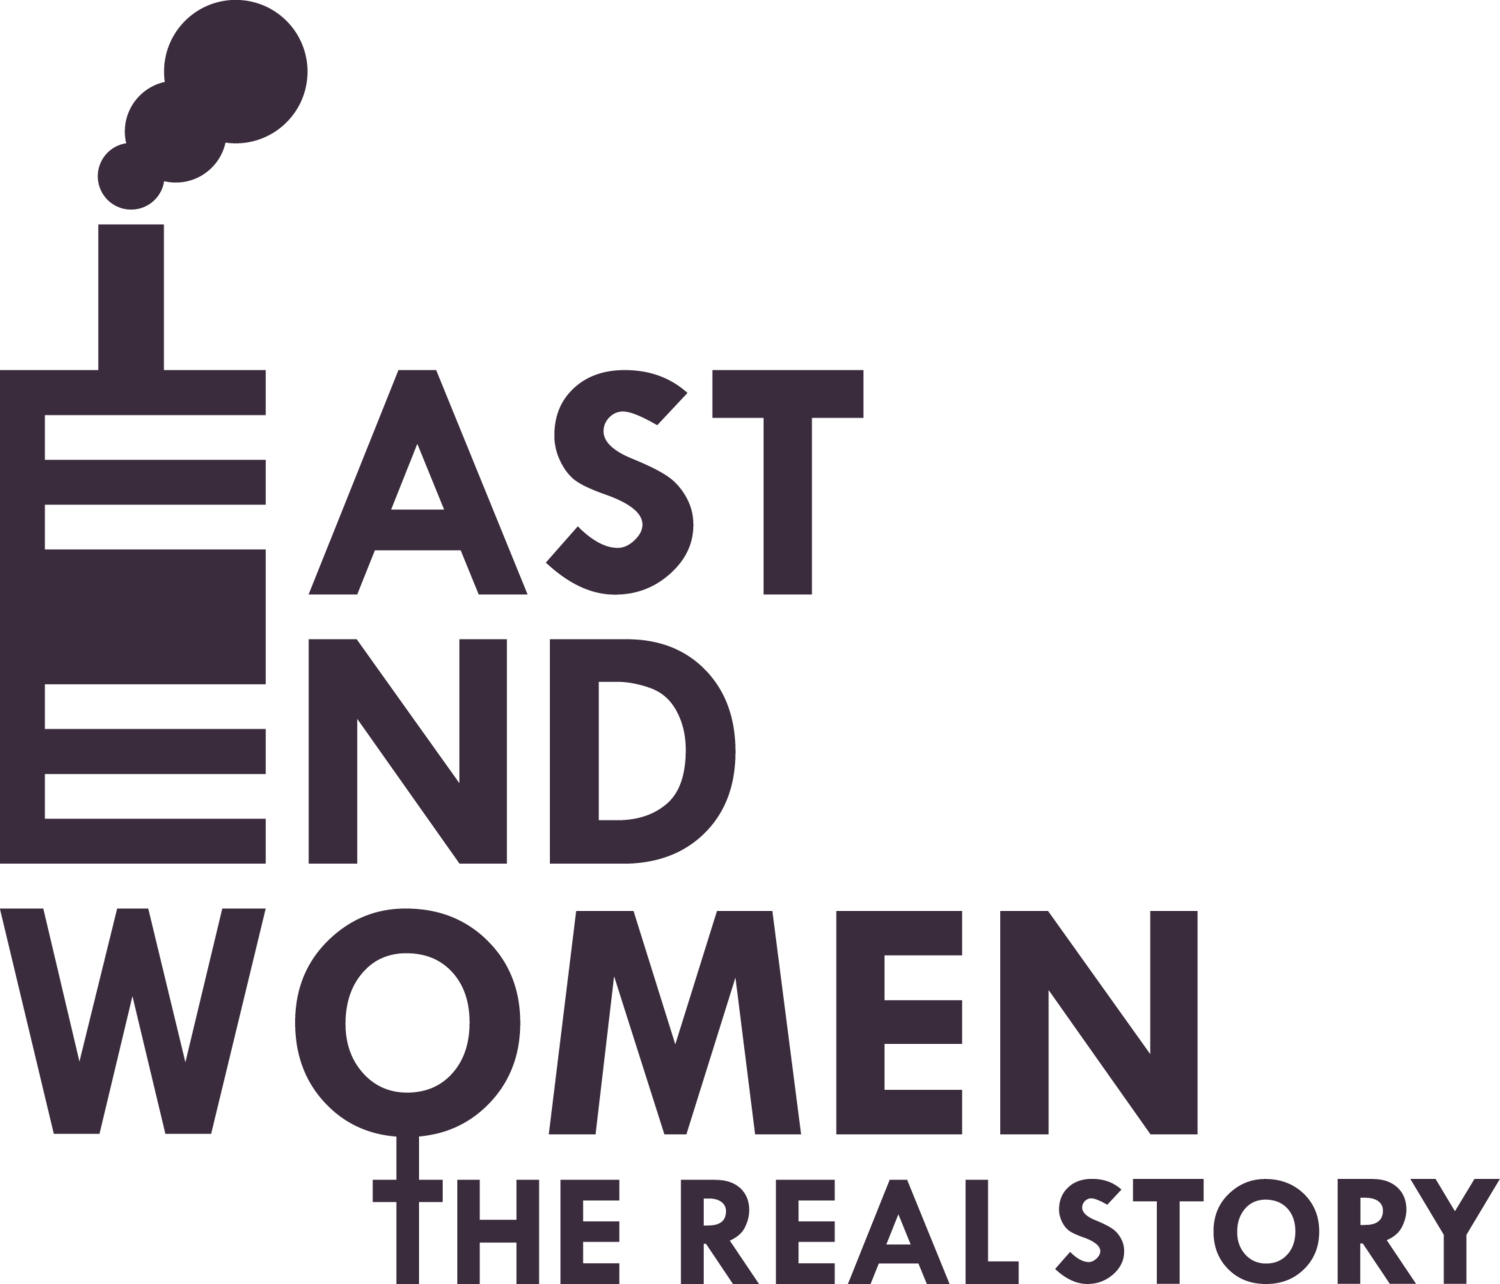 East End Women: The Real Story